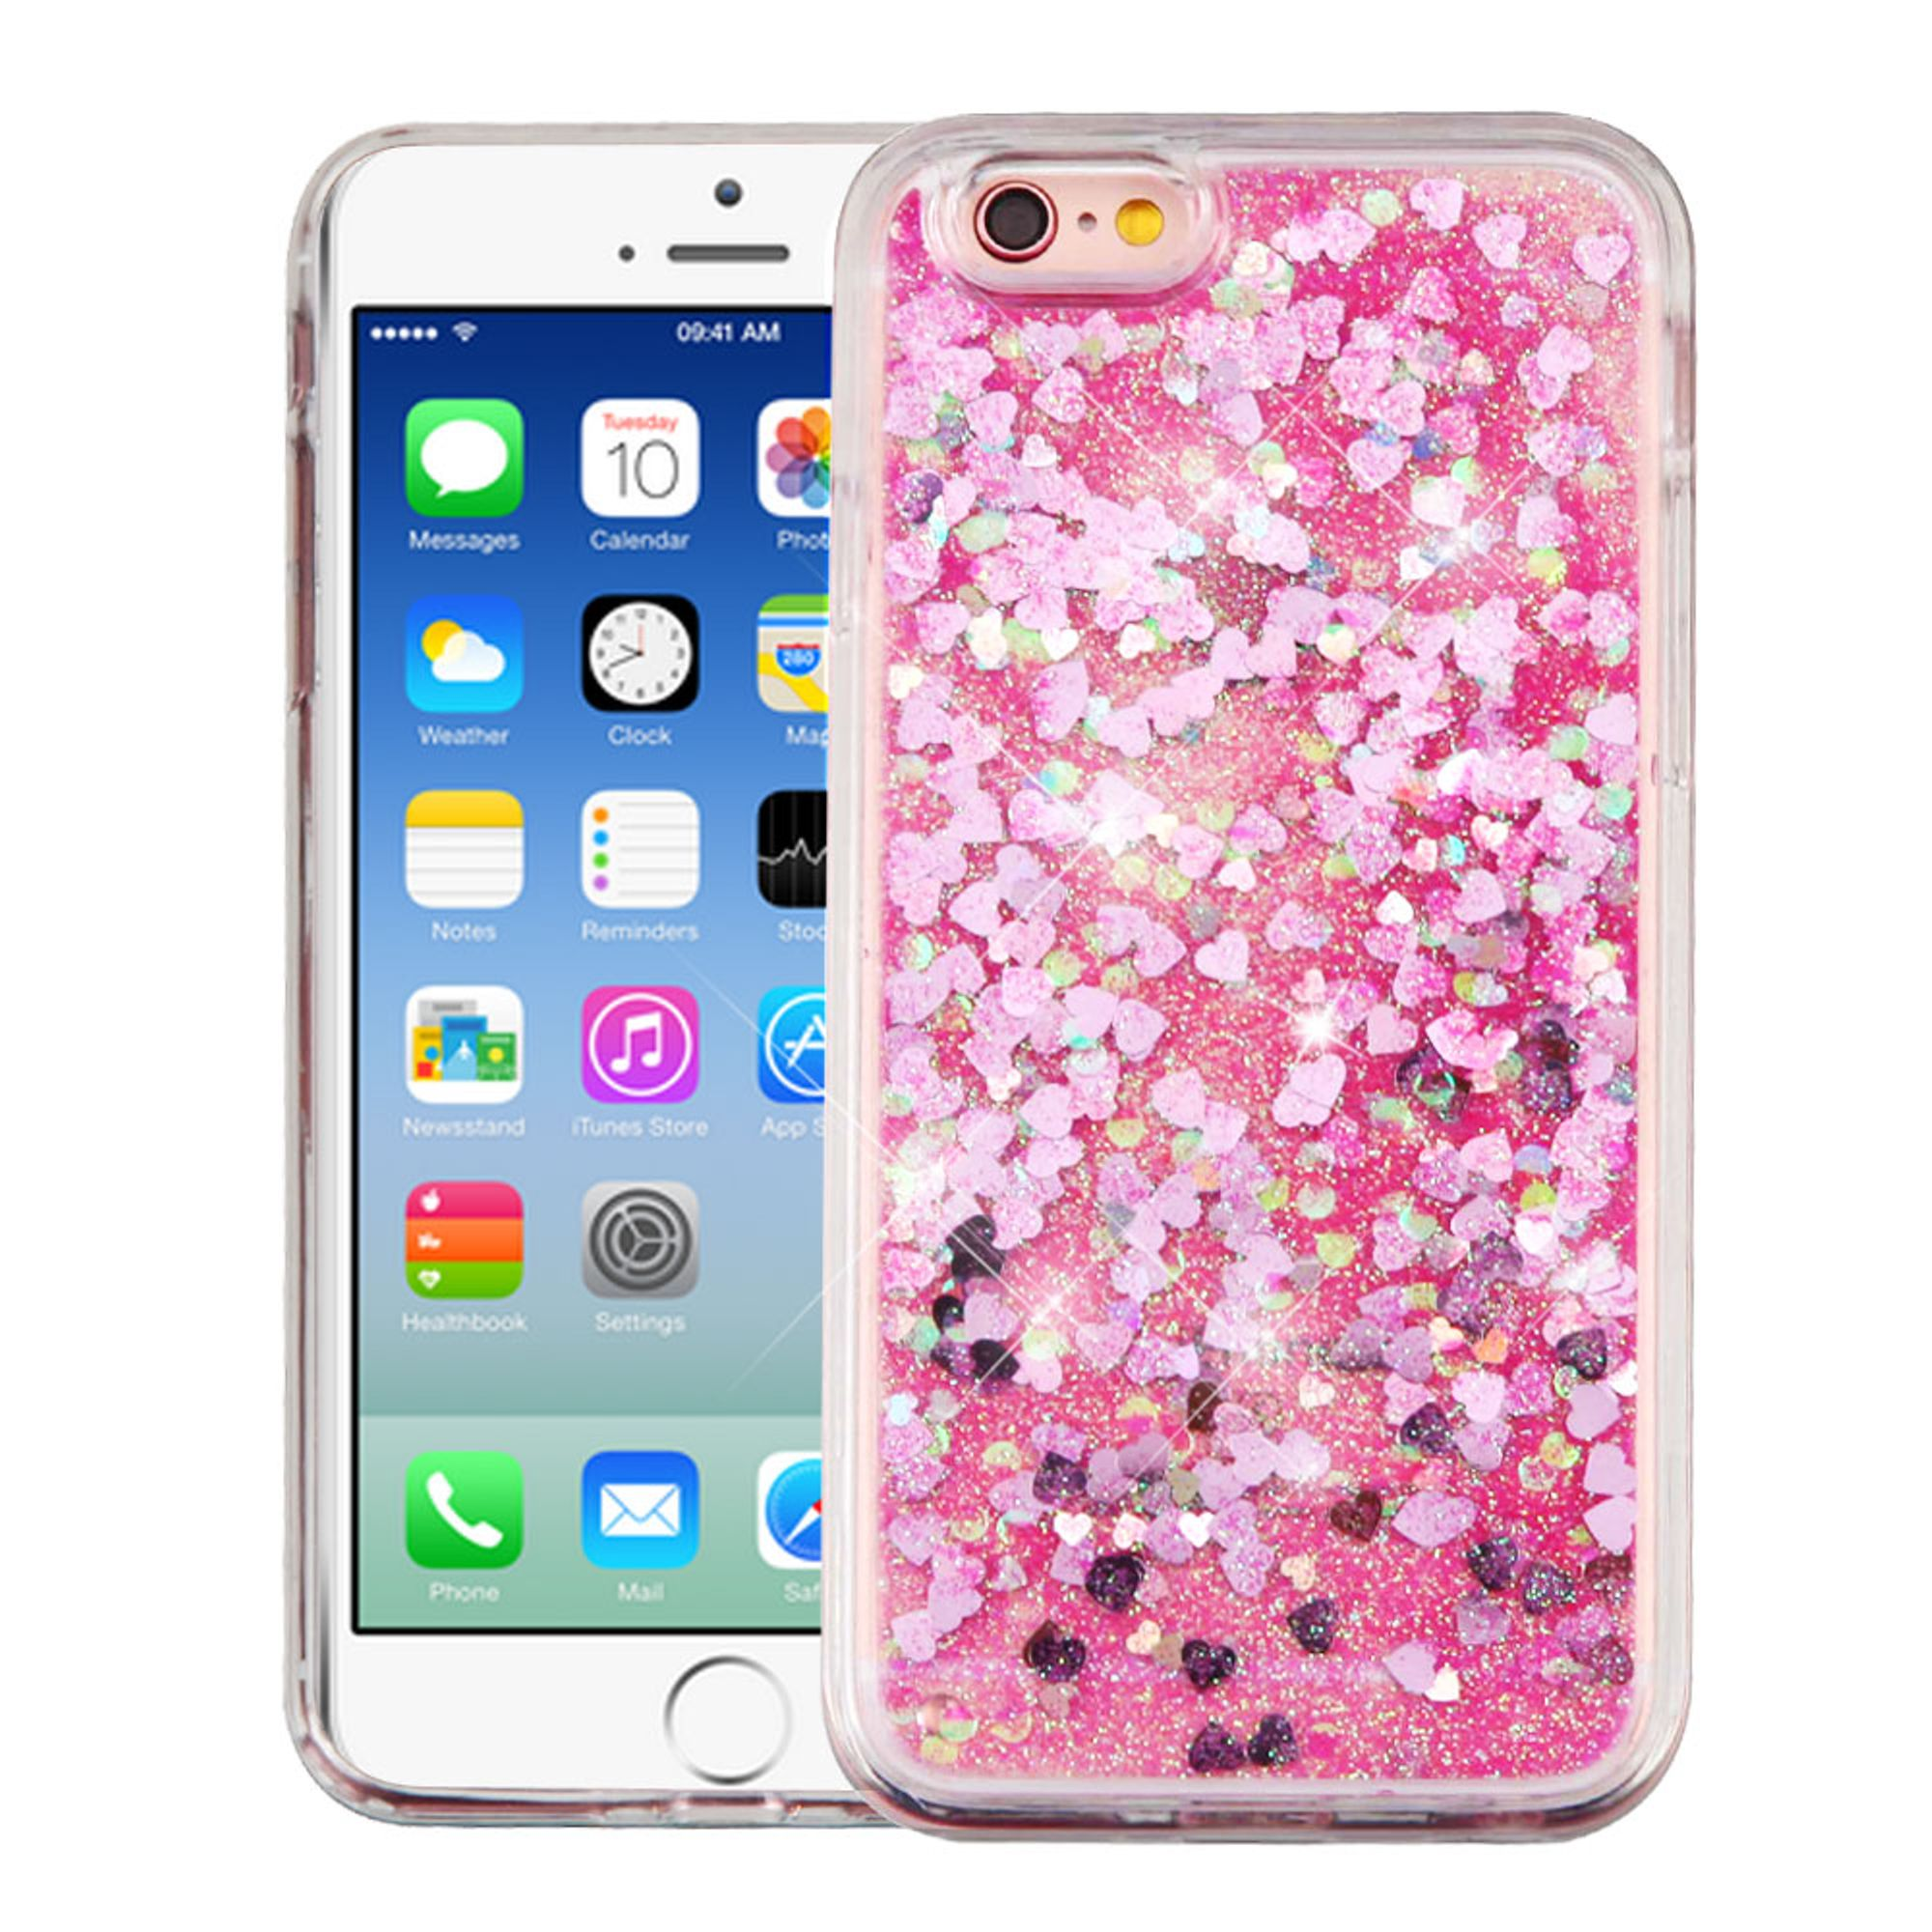 iPhone 6s case by Insten Luxury Quicksand Glitter Liquid Floating Sparkle Bling Fashion Phone Case Cover for Apple iPhone 6s / 6